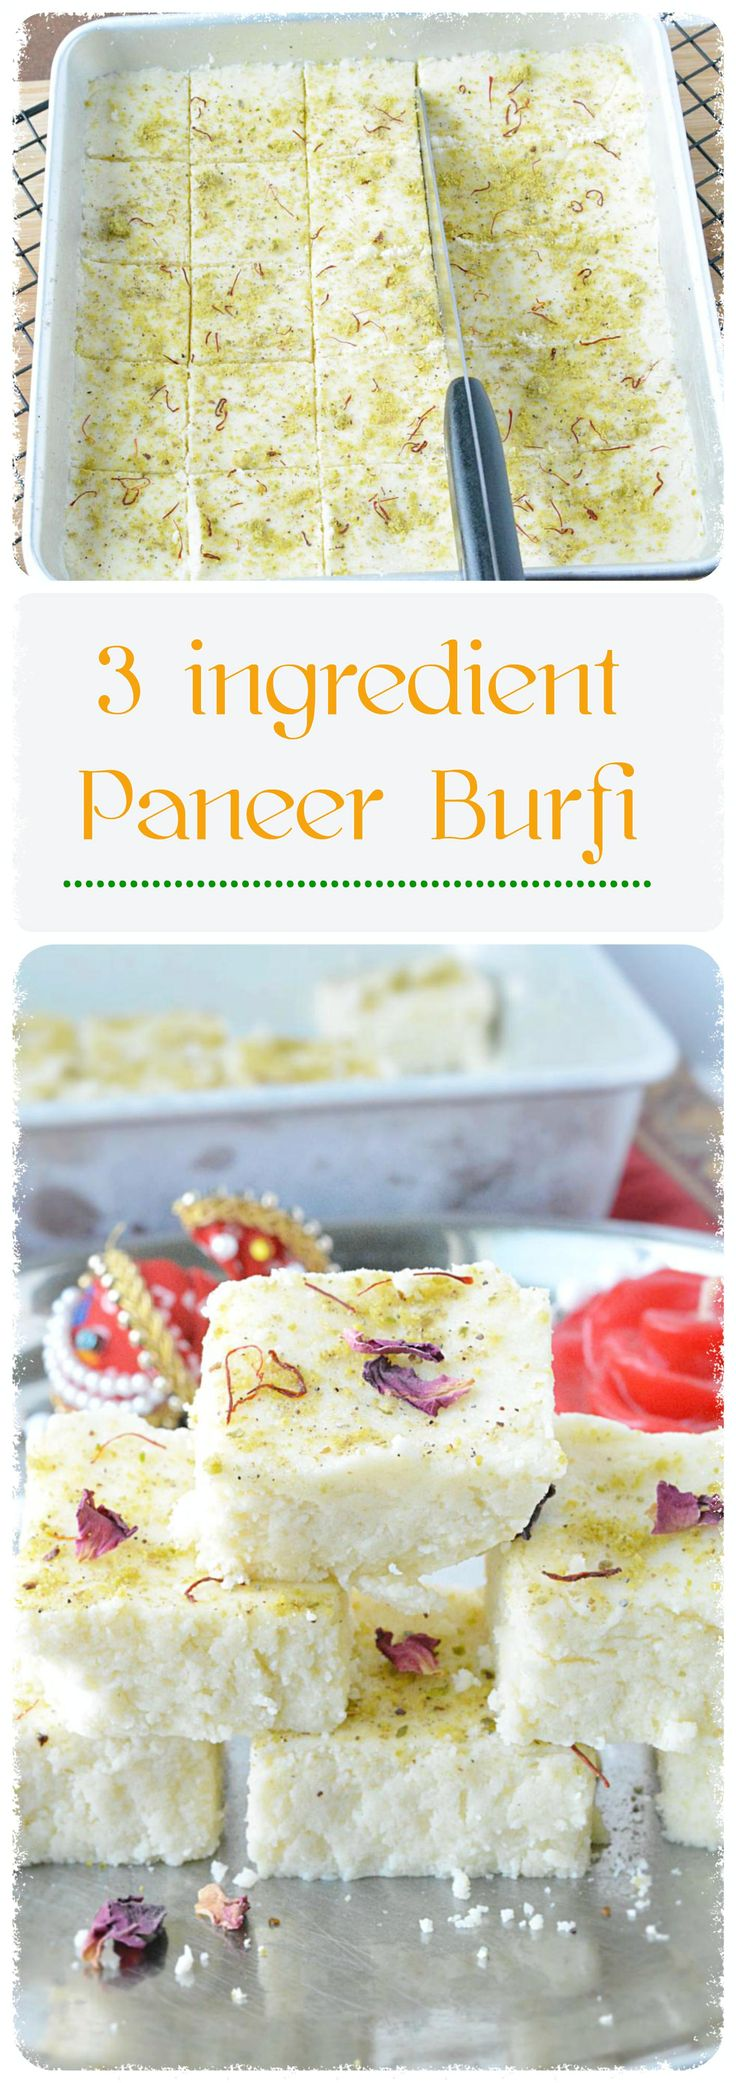 Enjoy my version of Paneer burfi which is delicious, rich and yummy and it will just melt away in your mouth. #paneer #burfi #indian festivals